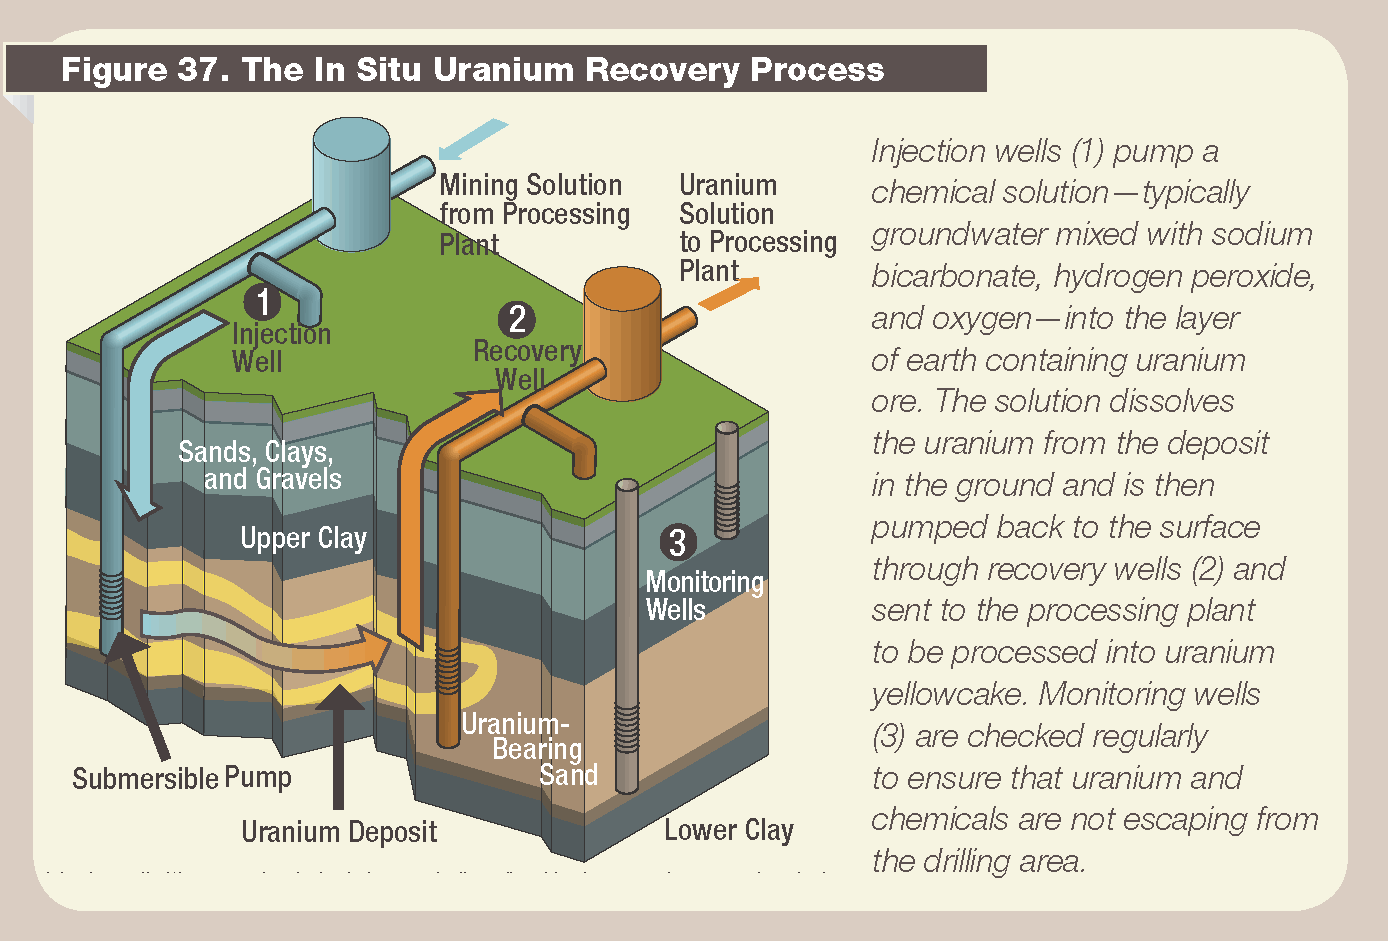 Uranium In Situ Leach via US Nuclear Regulatory Commission on Wikimedia